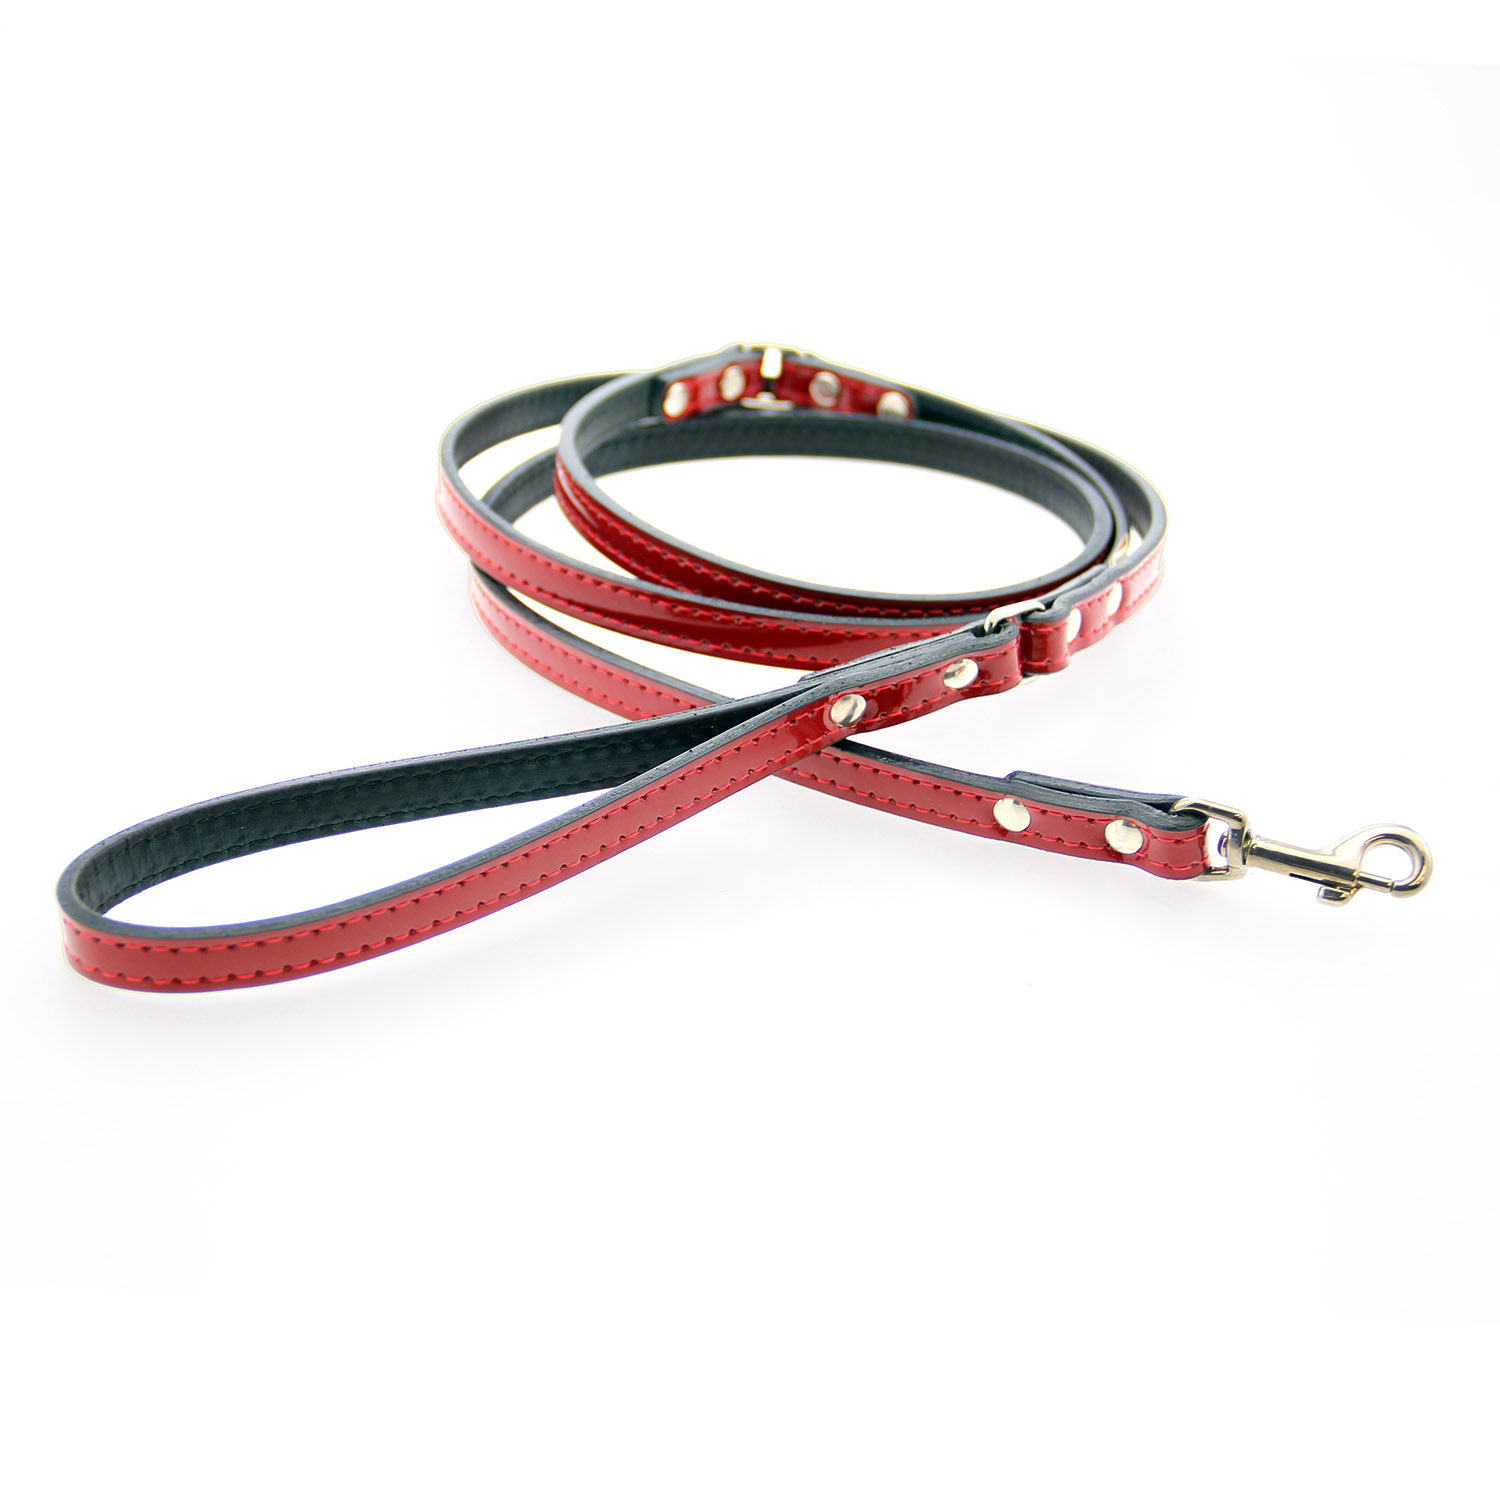 Manhattan Patent Leather Dog Leash by Auburn Leather - Red